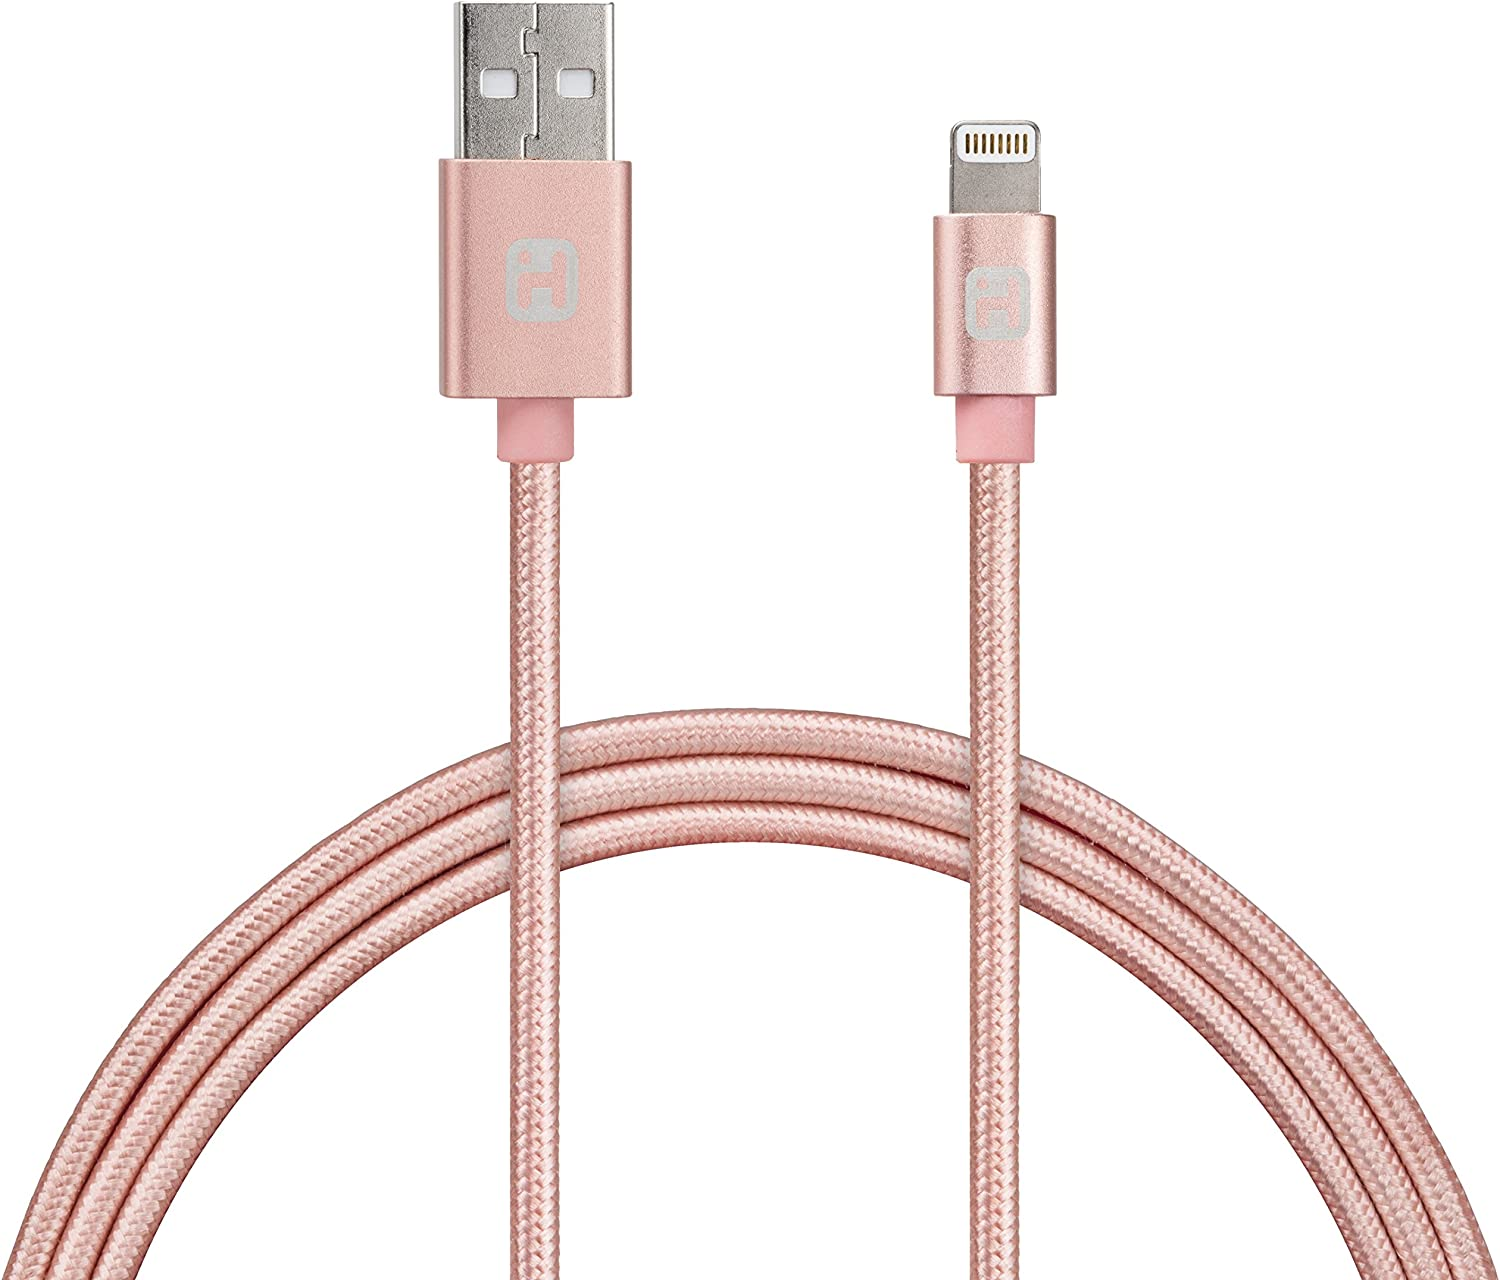 iHome Lightning Cable for 8 pin Lightning Devices - Rose Gold - 6'